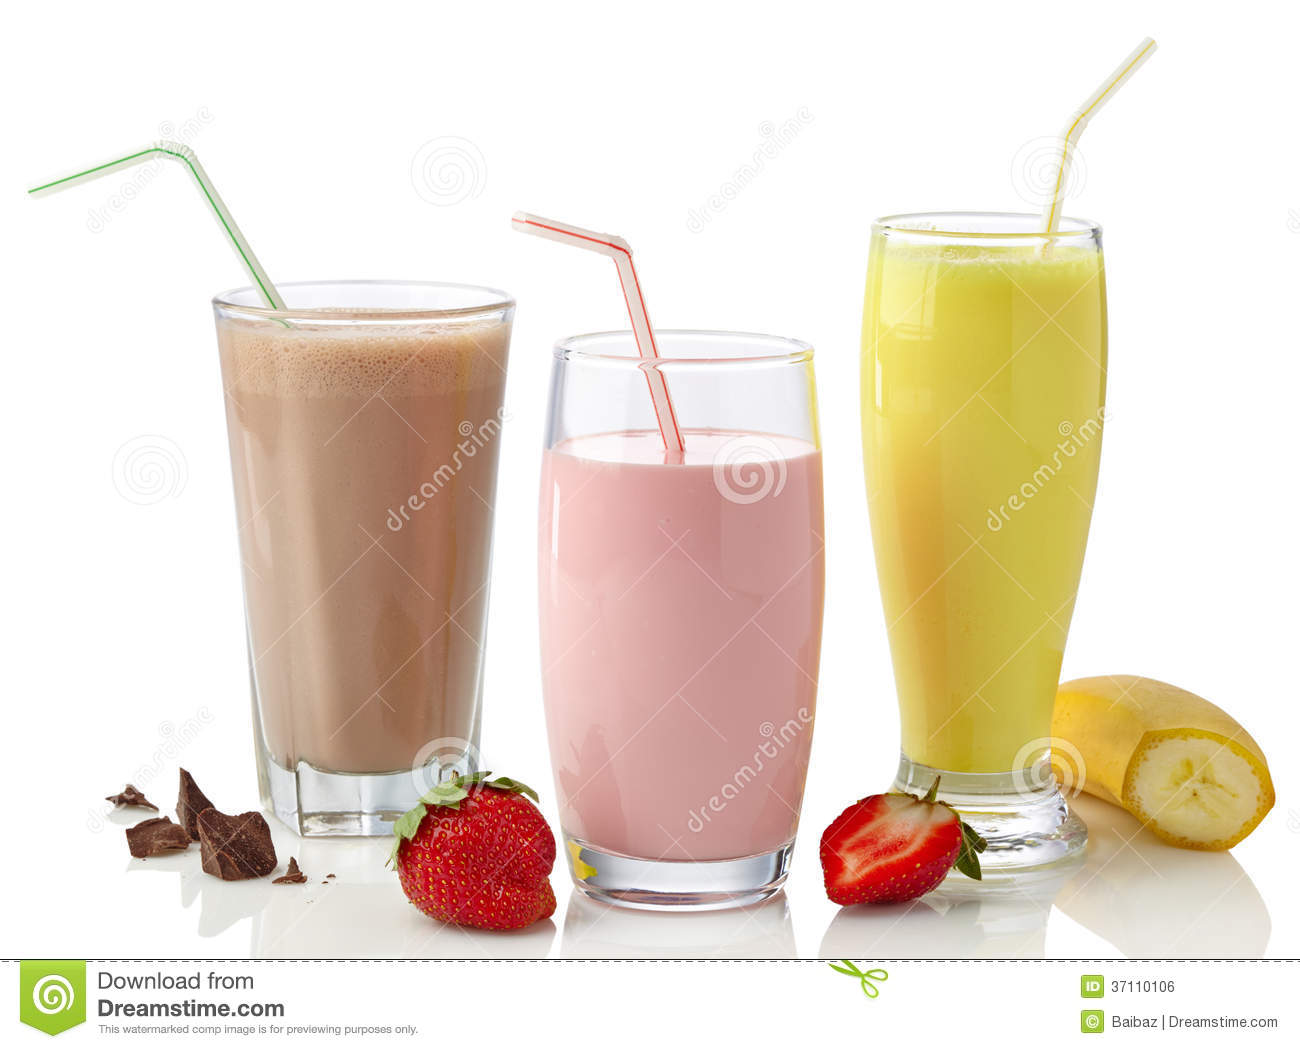 Strawberry, Chocolate And Banana Milkshakes Royalty Free ...